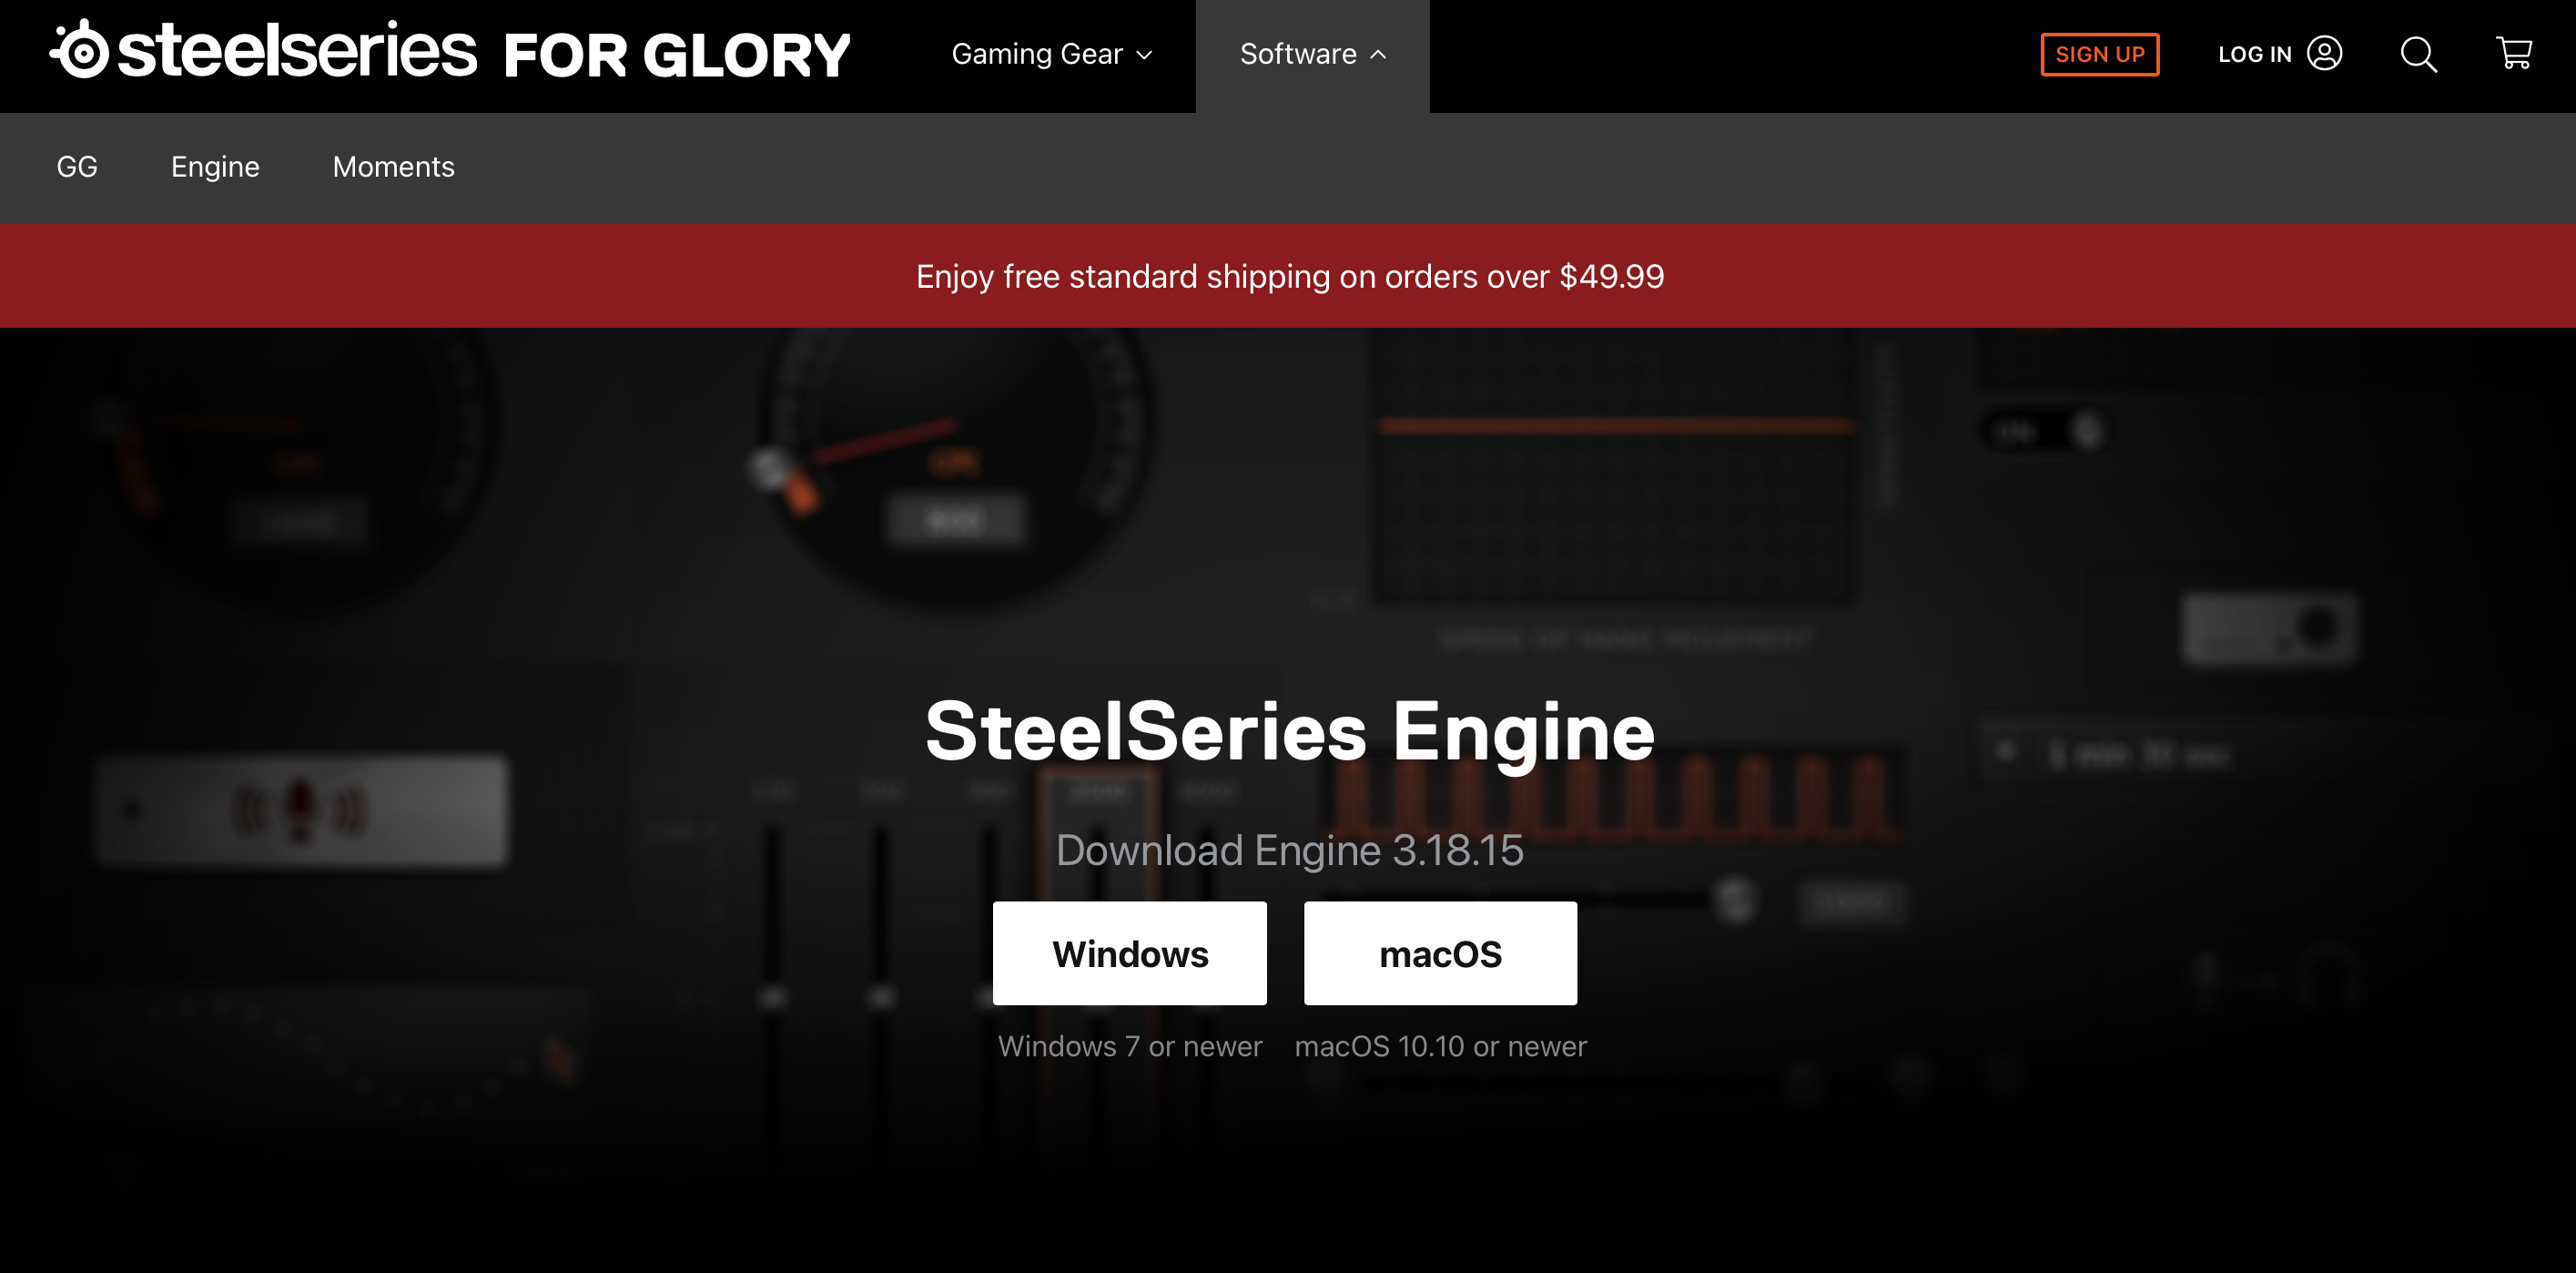 A look at the SteelSeries Engine download page.